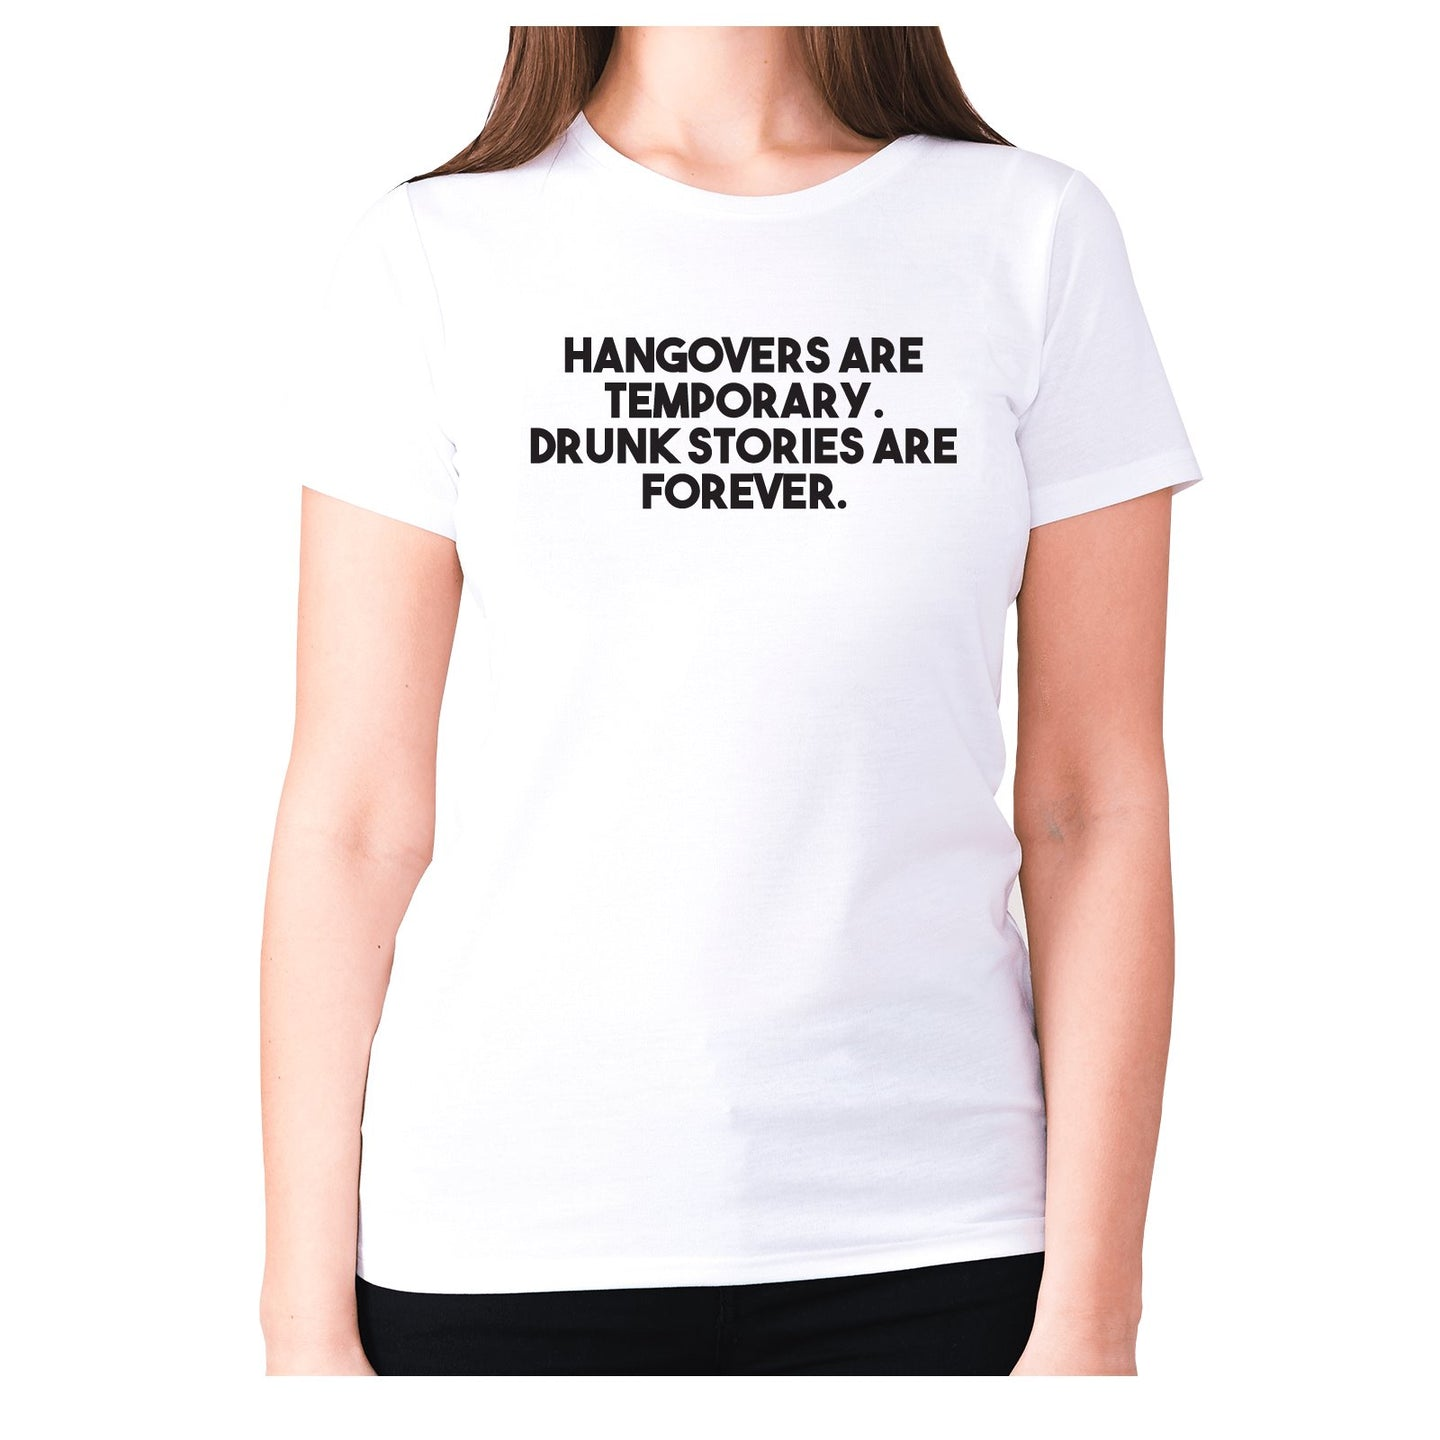 Hangovers are temporary. Drunk stories are forever - women's premium t-shirt - White / S - Graphic Gear